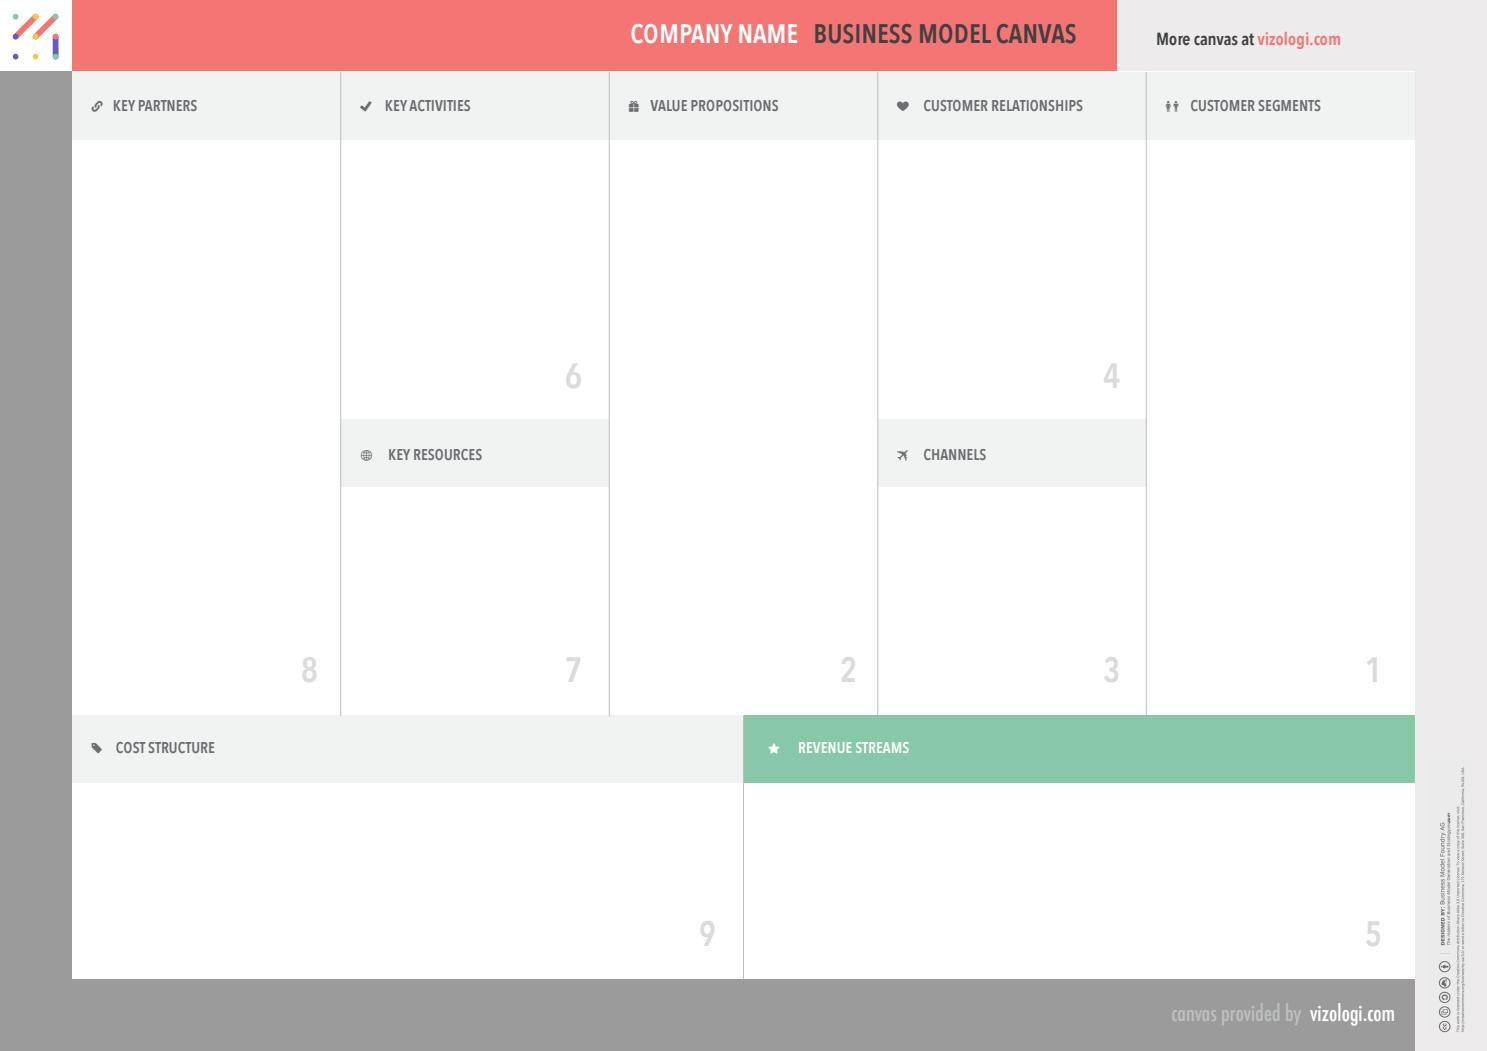 Business model canvas template PDF version by vizologi